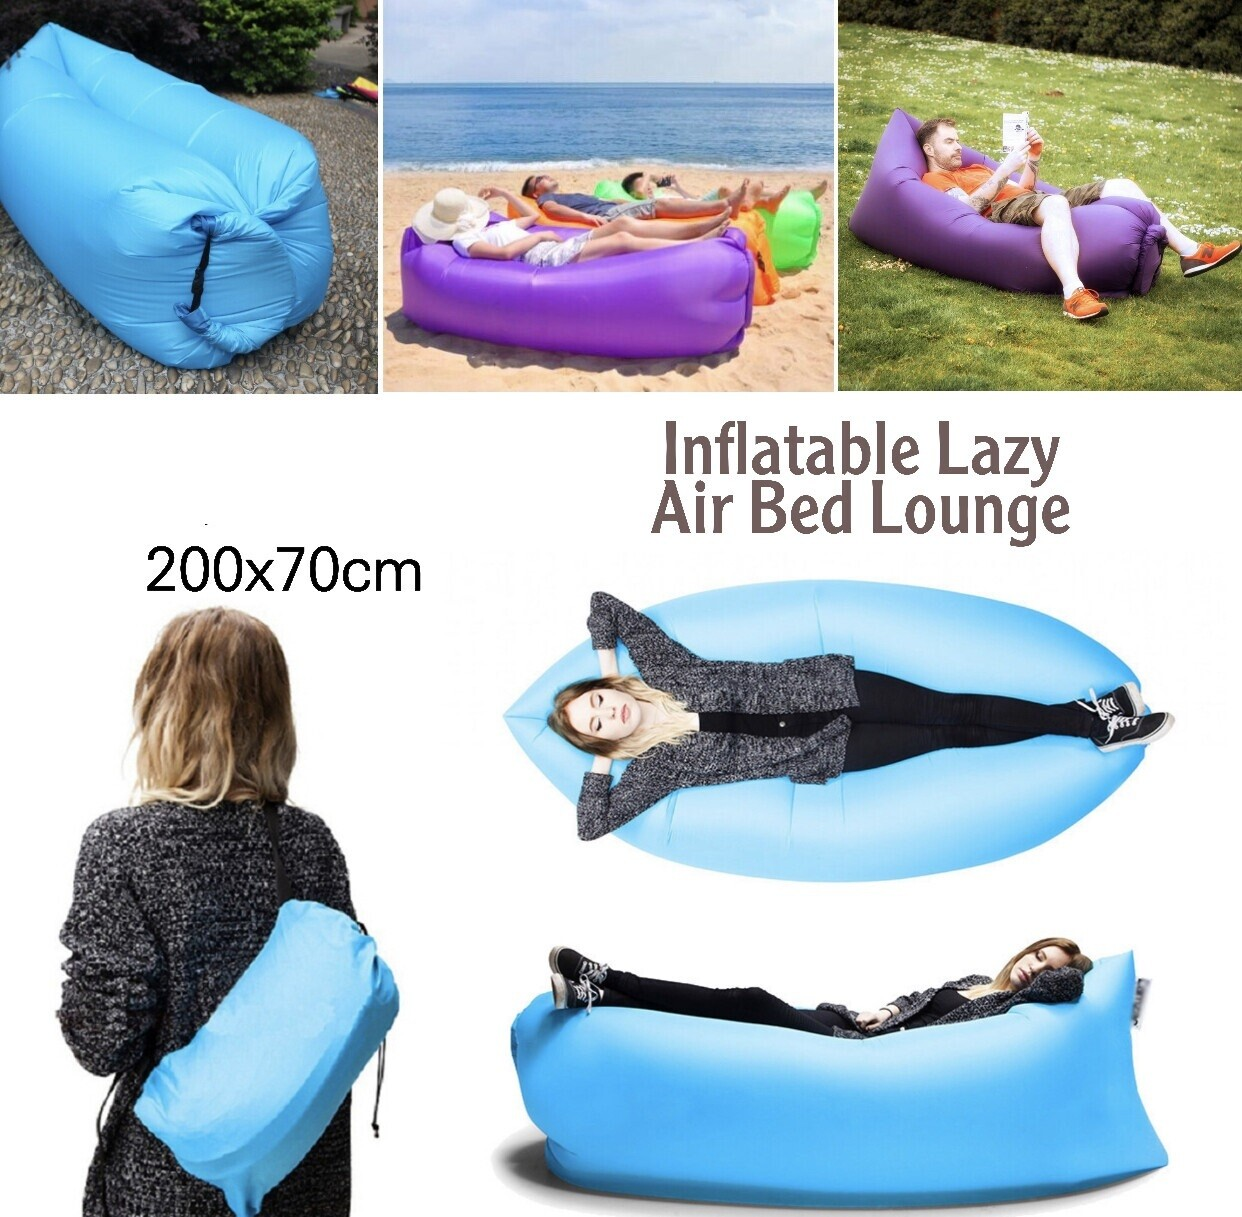 Inflatable Lazy Bed